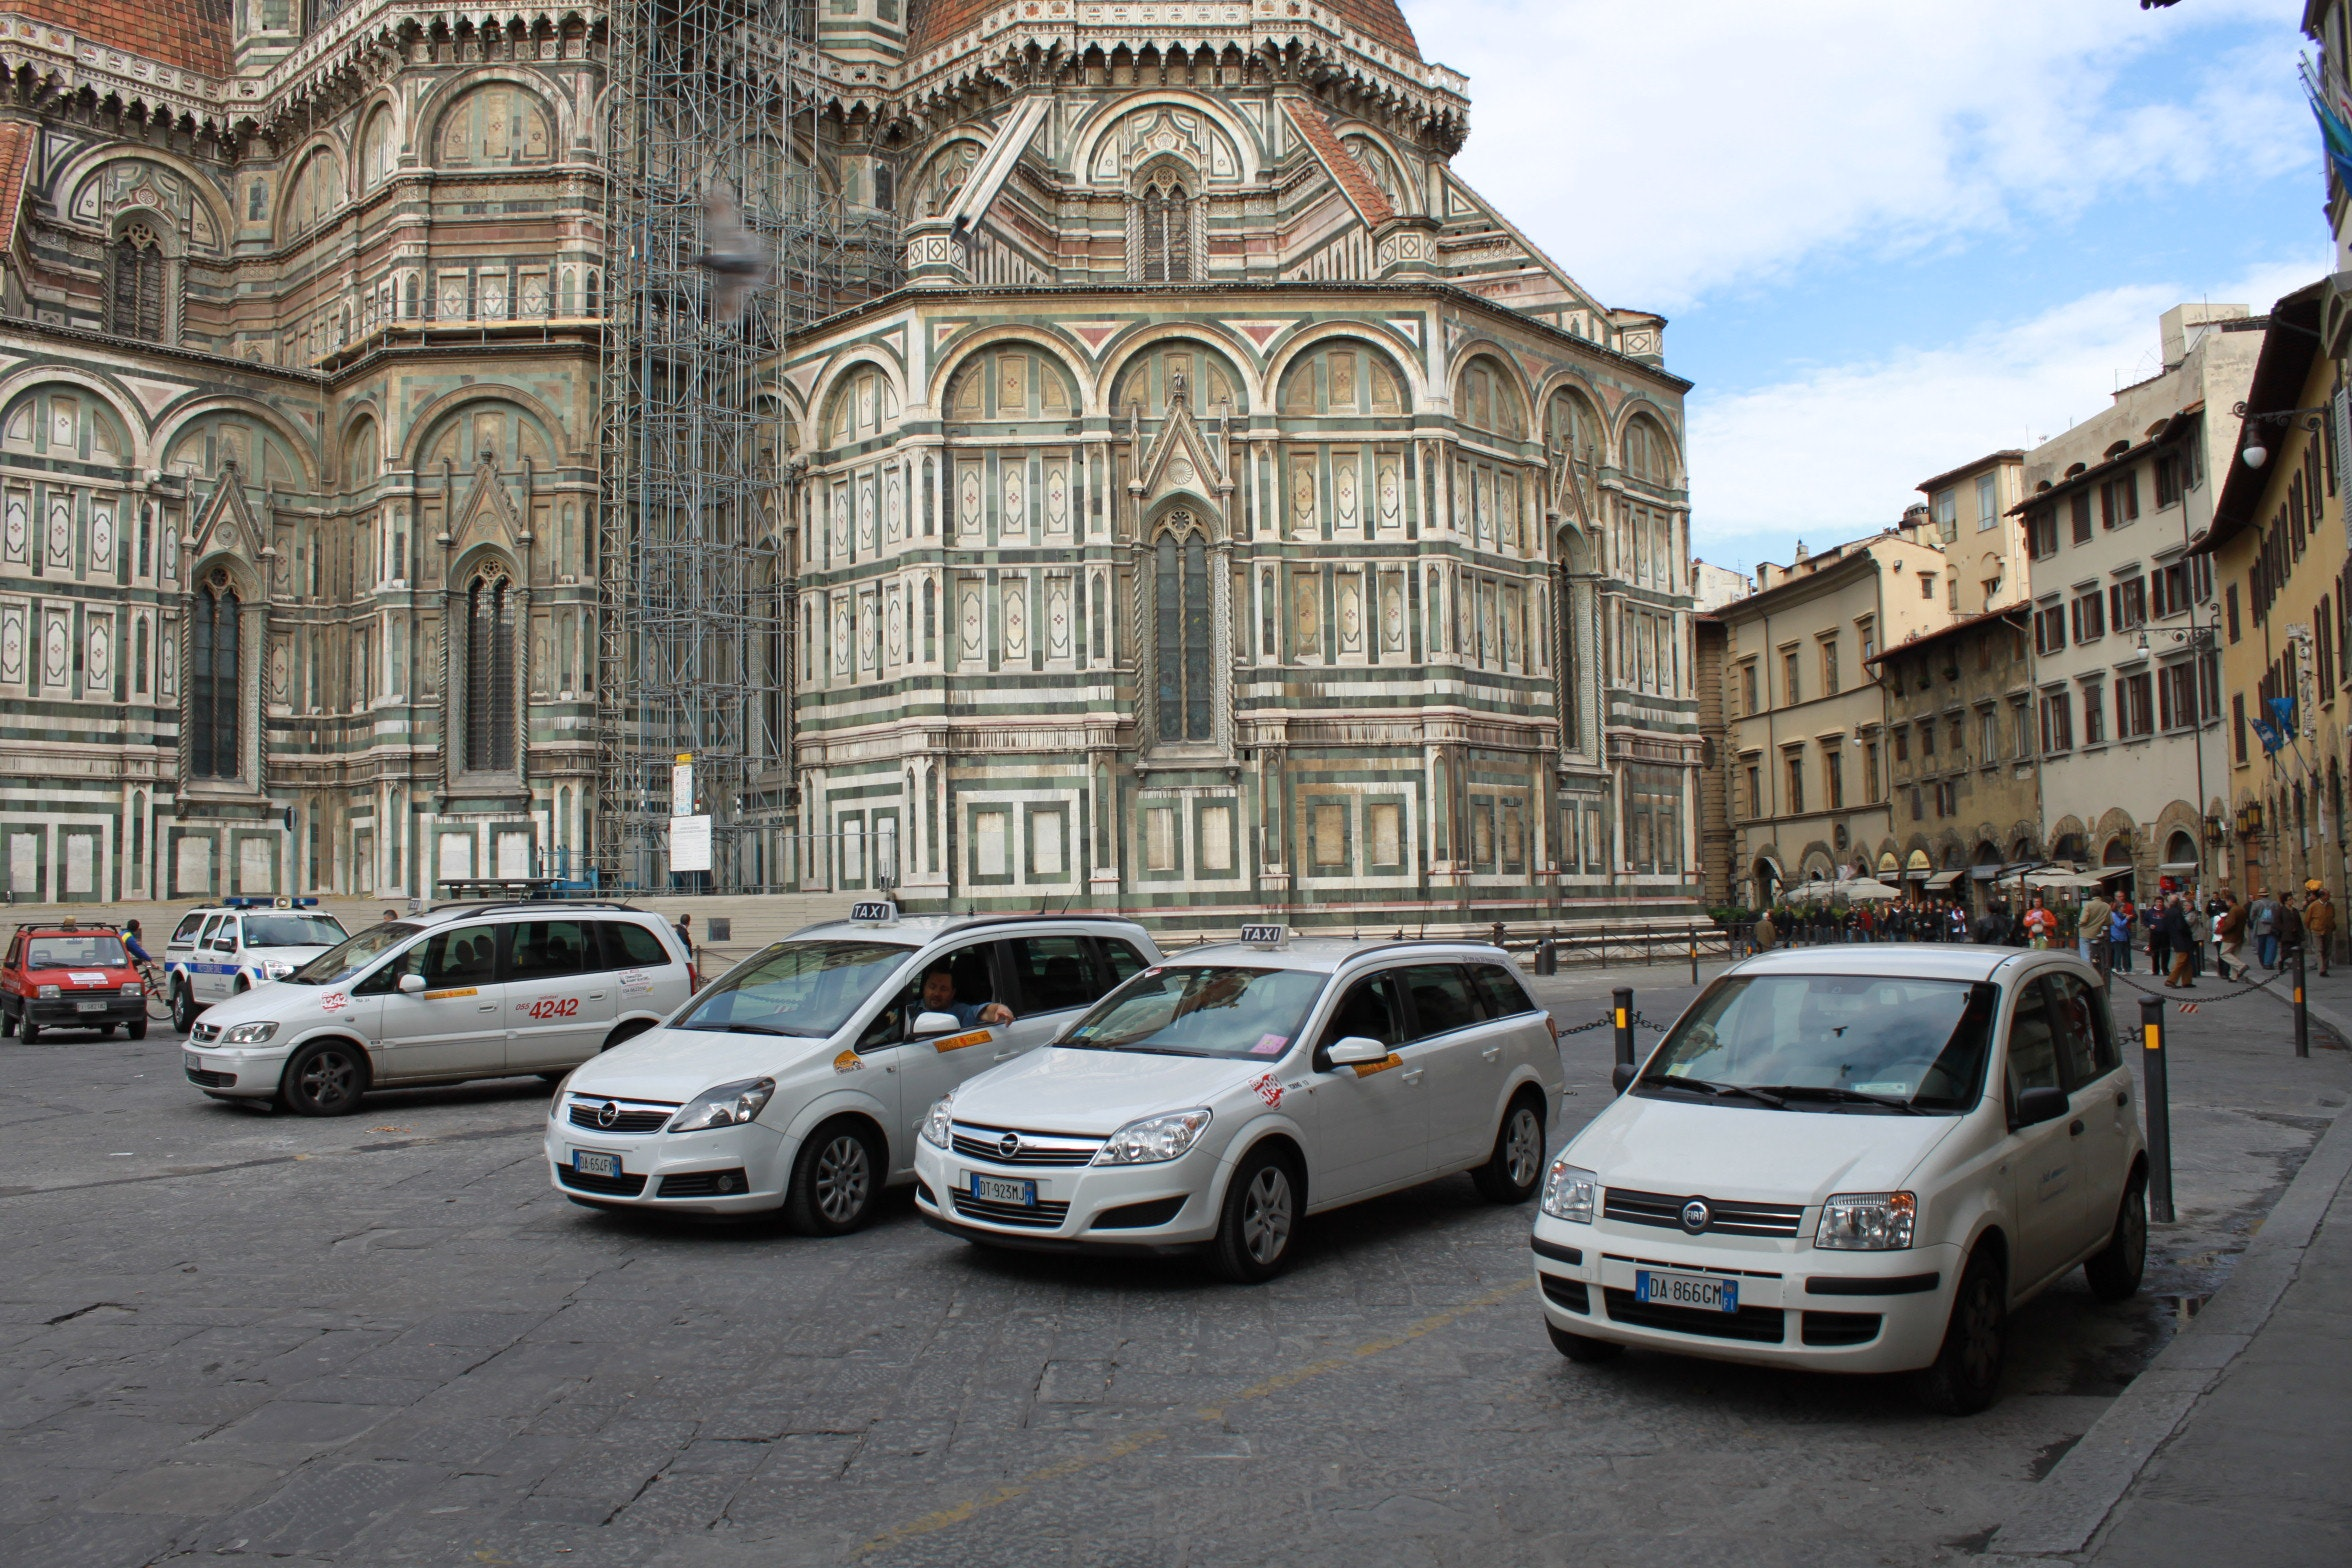 Taxi of the White Church: contact numbers